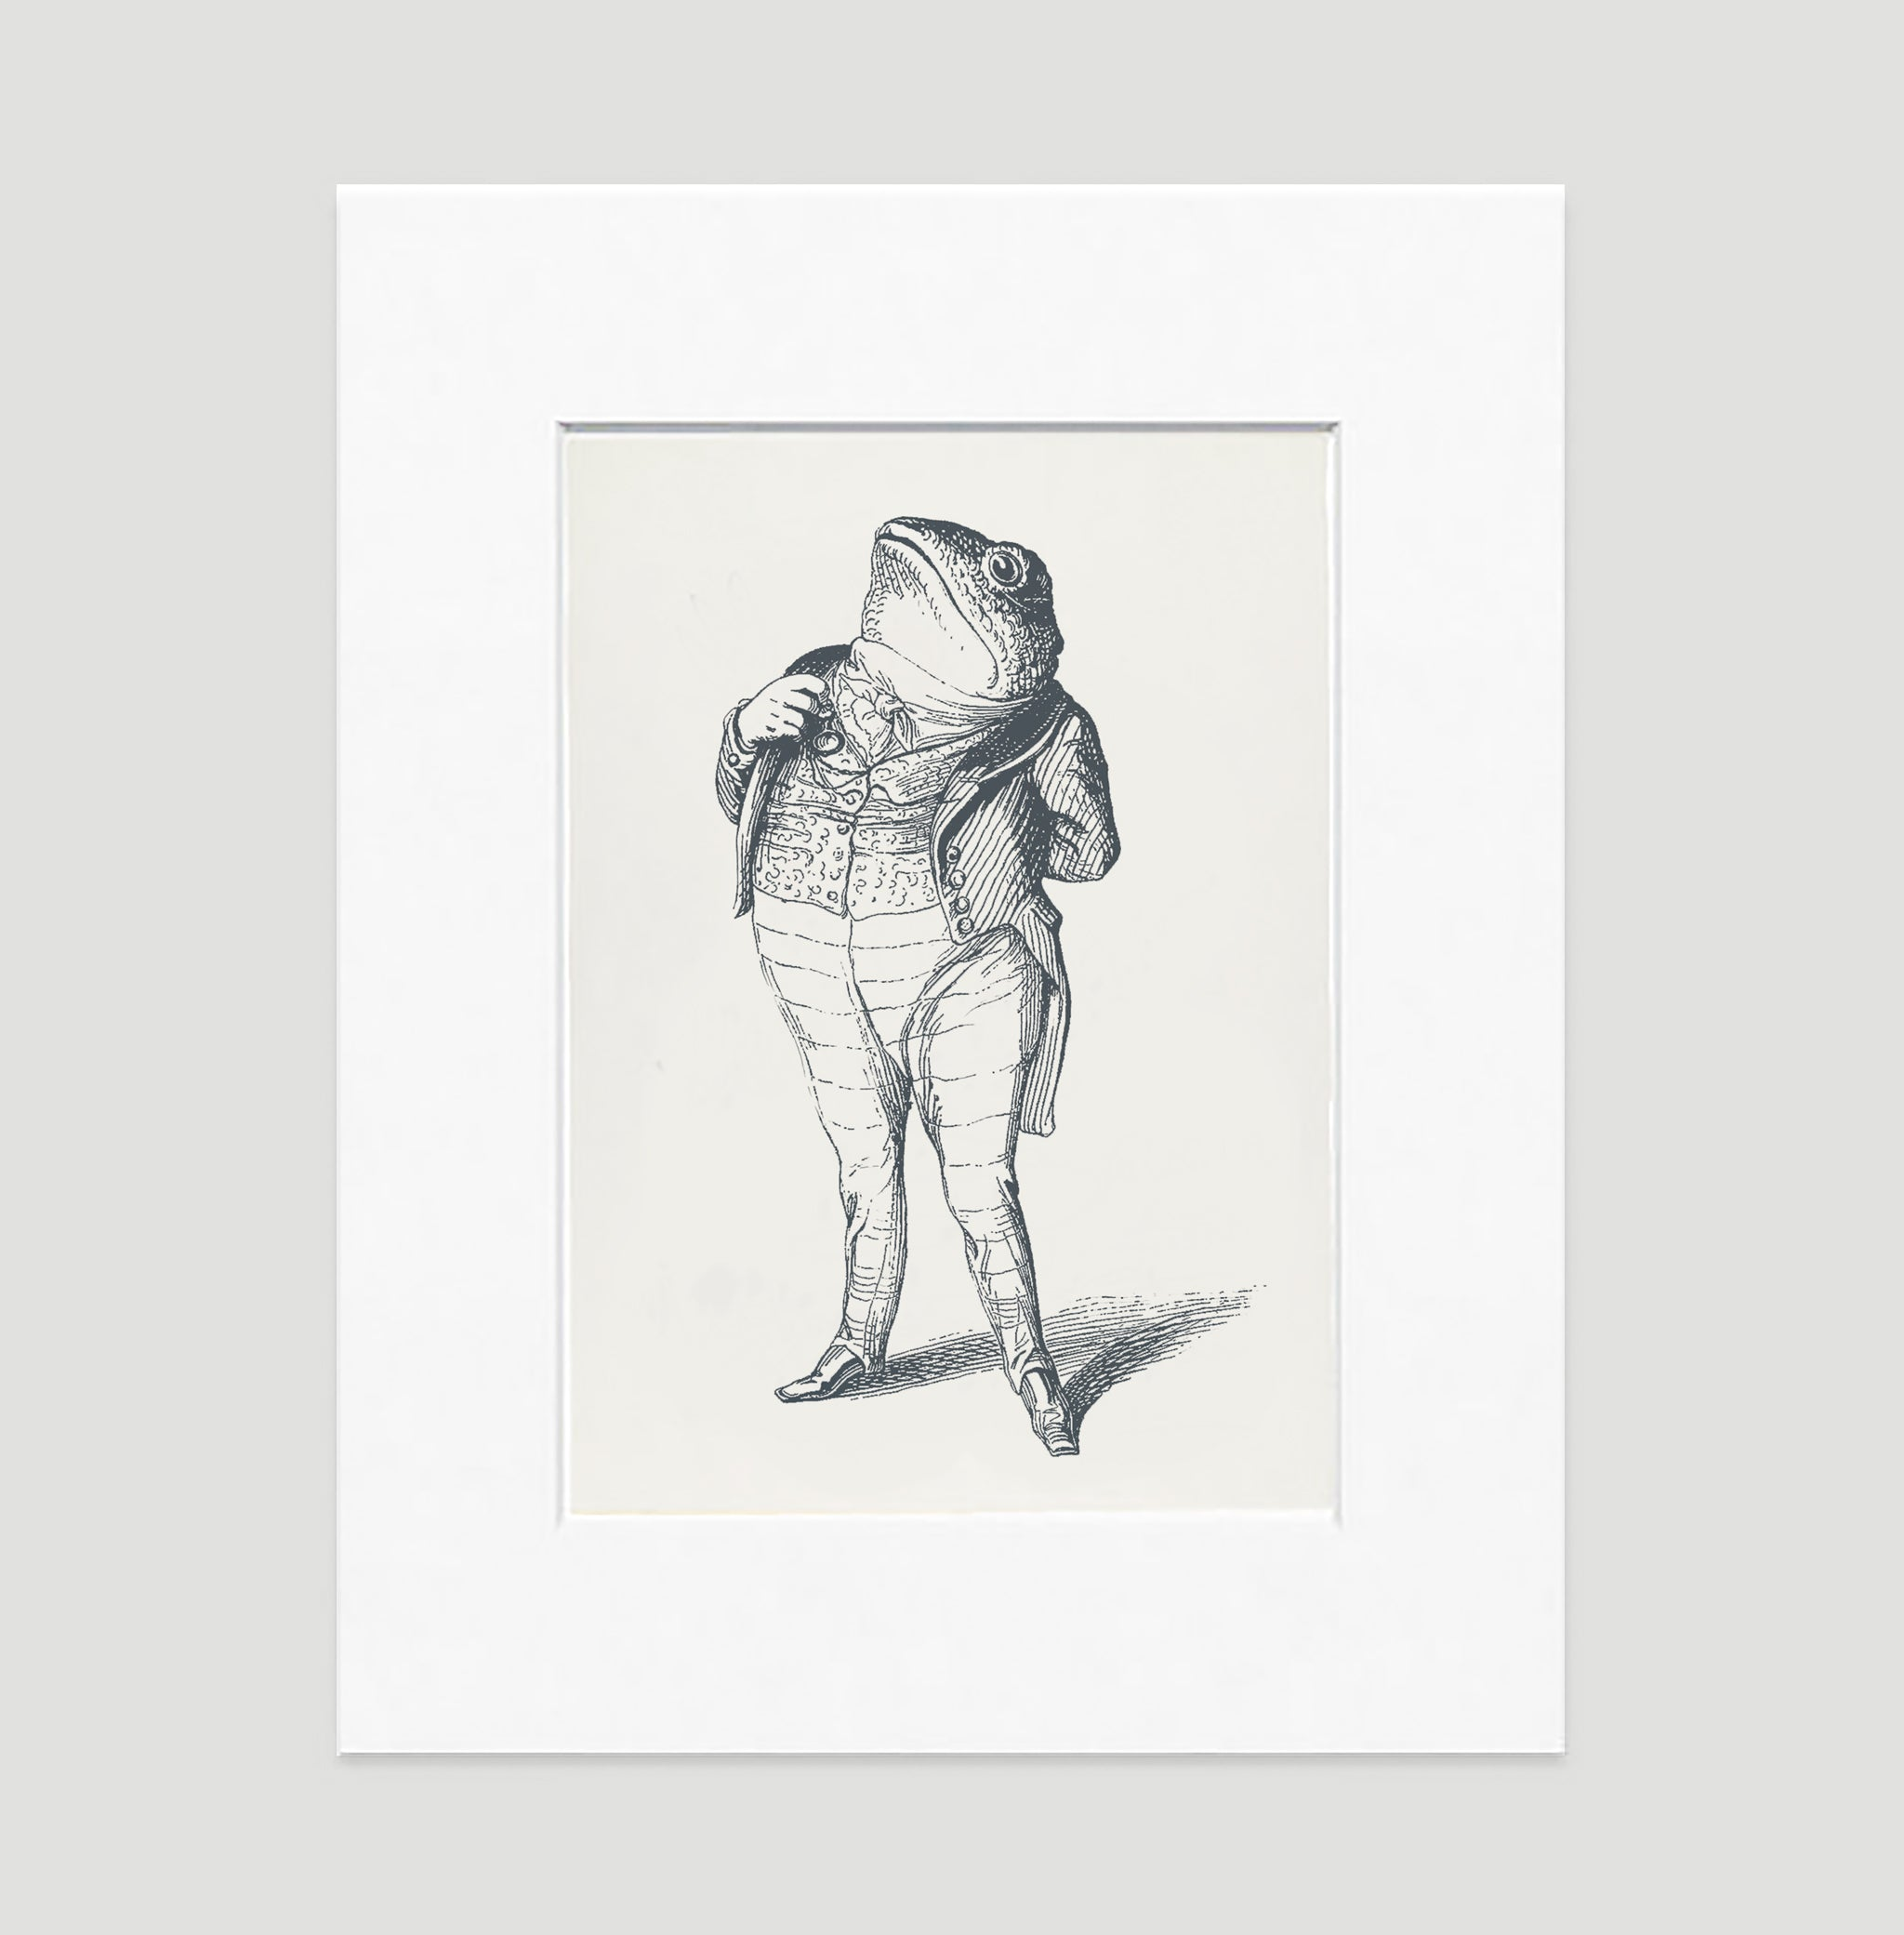 The Patriotic Frog Illustration Art Print Di Lewis Living Room Wall Decor